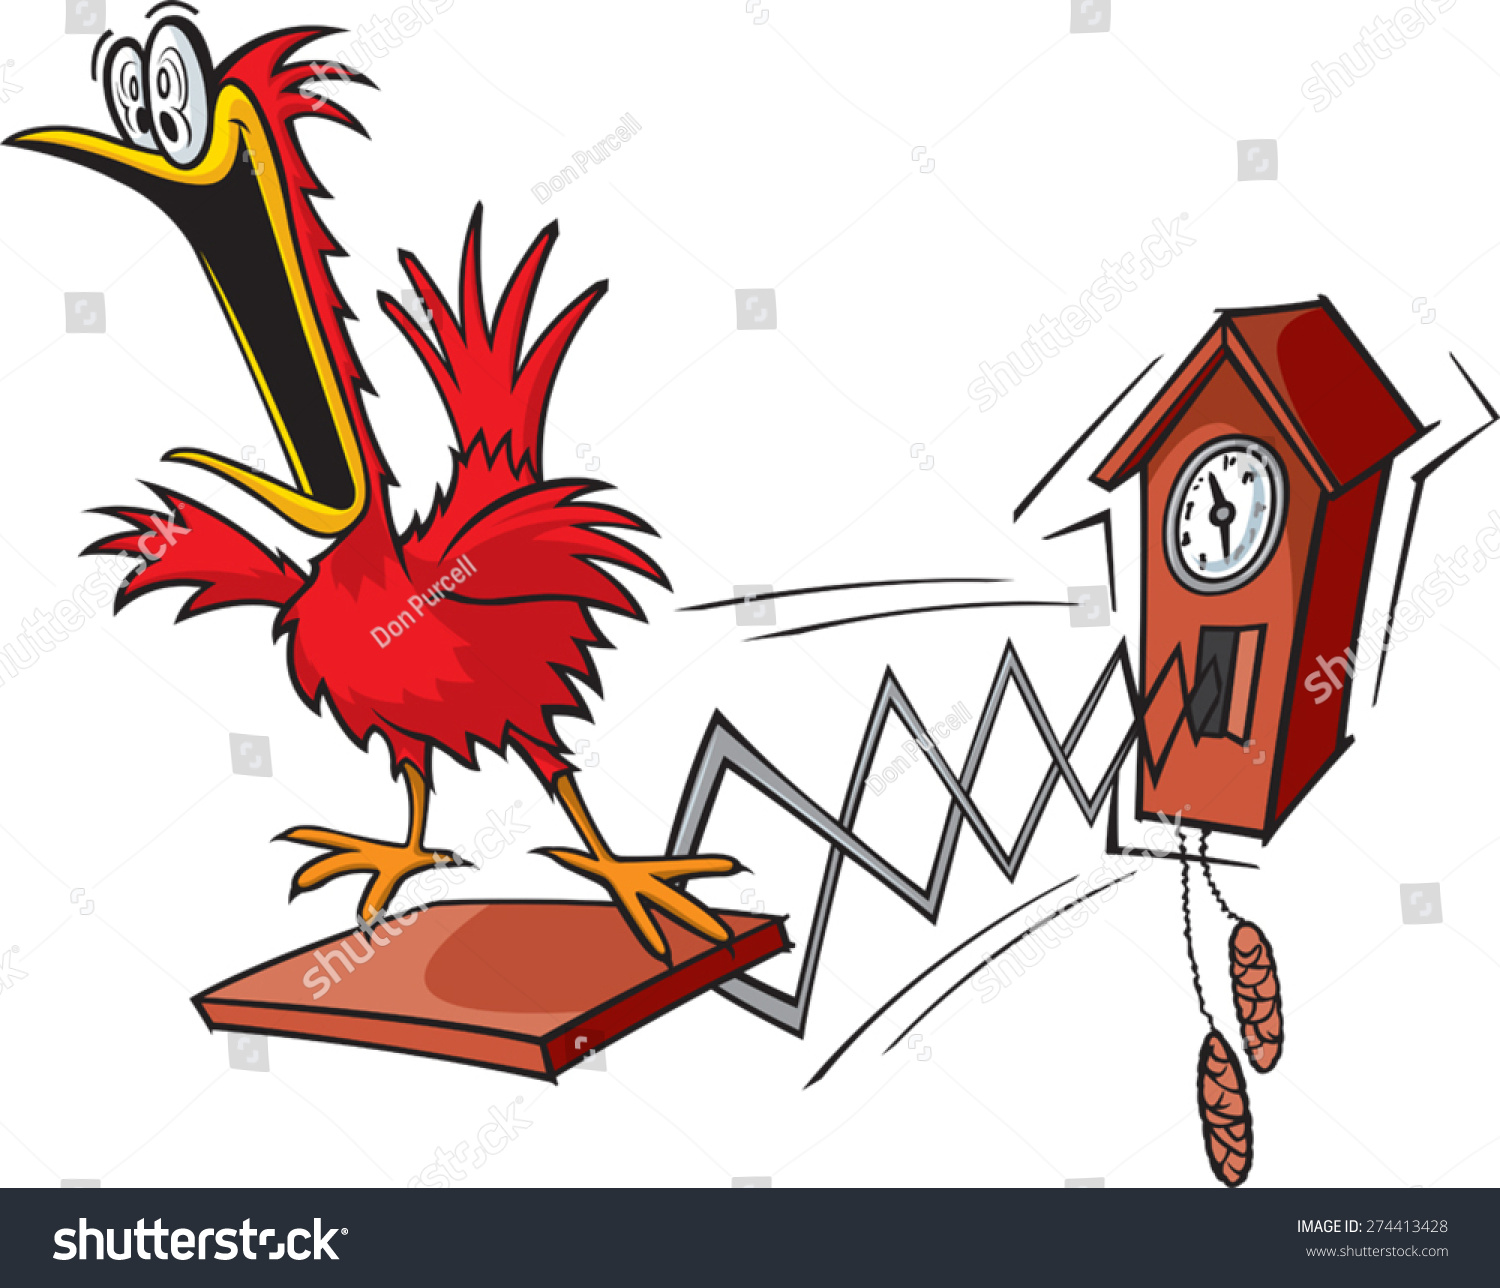 stock-vector-a-cartoon-cuckoo-clock-laye